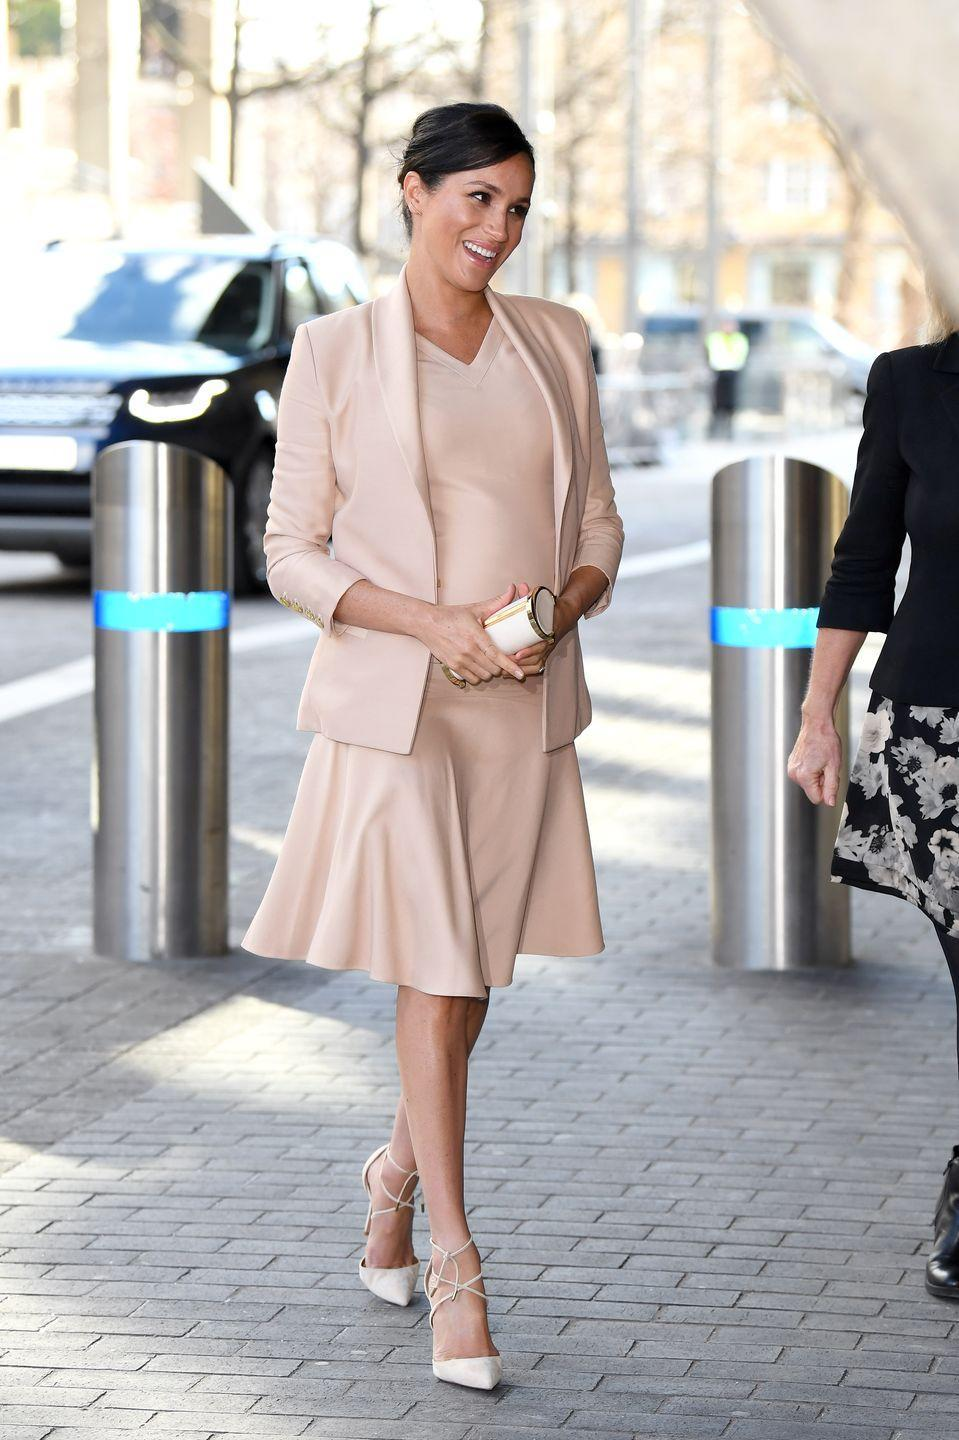 "<p>Meghan Markle chose a monochrome look for the first visit to her new patronage, the National Theatre. She wore a blush <a href=""https://www.net-a-porter.com/us/en/Shop/Designers/Brandon_Maxwell?gclsrc=aw.ds&cm_mmc=GoogleUS--c-_-NAP_EN_NY-_-NAP+-+AM+-+NY+-+Designer_Brandon+Maxwell+-+BT--Brandon+Maxwell+-+Alone+-+Exact-_-brandon%20maxwell_e_aud-314946096719:kwd-988907400_AM&gclid=CjwKCAiAs8XiBRAGEiwAFyQ-evzl75VtD0sQoX-tSmoroweEXZ7wTyyQJjFvx_XAROZ0P95HCWSQHBoCZ5EQAvD_BwE&pn=1&npp=60&image_view=product&dScroll=0"" rel=""nofollow noopener"" target=""_blank"" data-ylk=""slk:Brandon Maxwell"" class=""link rapid-noclick-resp"">Brandon Maxwell</a> dress, paired with a <a href=""https://chcarolinaherrera.com/ch00/en/women/bags/must-haves-b680170/item/black-metropolitan-insignia-small-clutch-bndaaca10bia9921-b828192"" rel=""nofollow noopener"" target=""_blank"" data-ylk=""slk:Carolina Herrera clutch"" class=""link rapid-noclick-resp"">Carolina Herrera clutch</a>, and <a href=""https://www.net-a-porter.com/us/en/product/1099862/Aquazzura/very-matilde-85-suede-pumps"" rel=""nofollow noopener"" target=""_blank"" data-ylk=""slk:Aquazzura pumps"" class=""link rapid-noclick-resp"">Aquazzura pumps</a>.</p><p><a class=""link rapid-noclick-resp"" href=""https://www.bergdorfgoodman.com/Aquazzura-Very-Matilde-Crisscross-Pumps/prod141470290/p.prod?eVar4=You+May+Also+Like"" rel=""nofollow noopener"" target=""_blank"" data-ylk=""slk:SHOP SIMILAR"">SHOP SIMILAR</a> <em>Very Matilde Crisscross Pumps, Aquazzura, $695</em></p>"